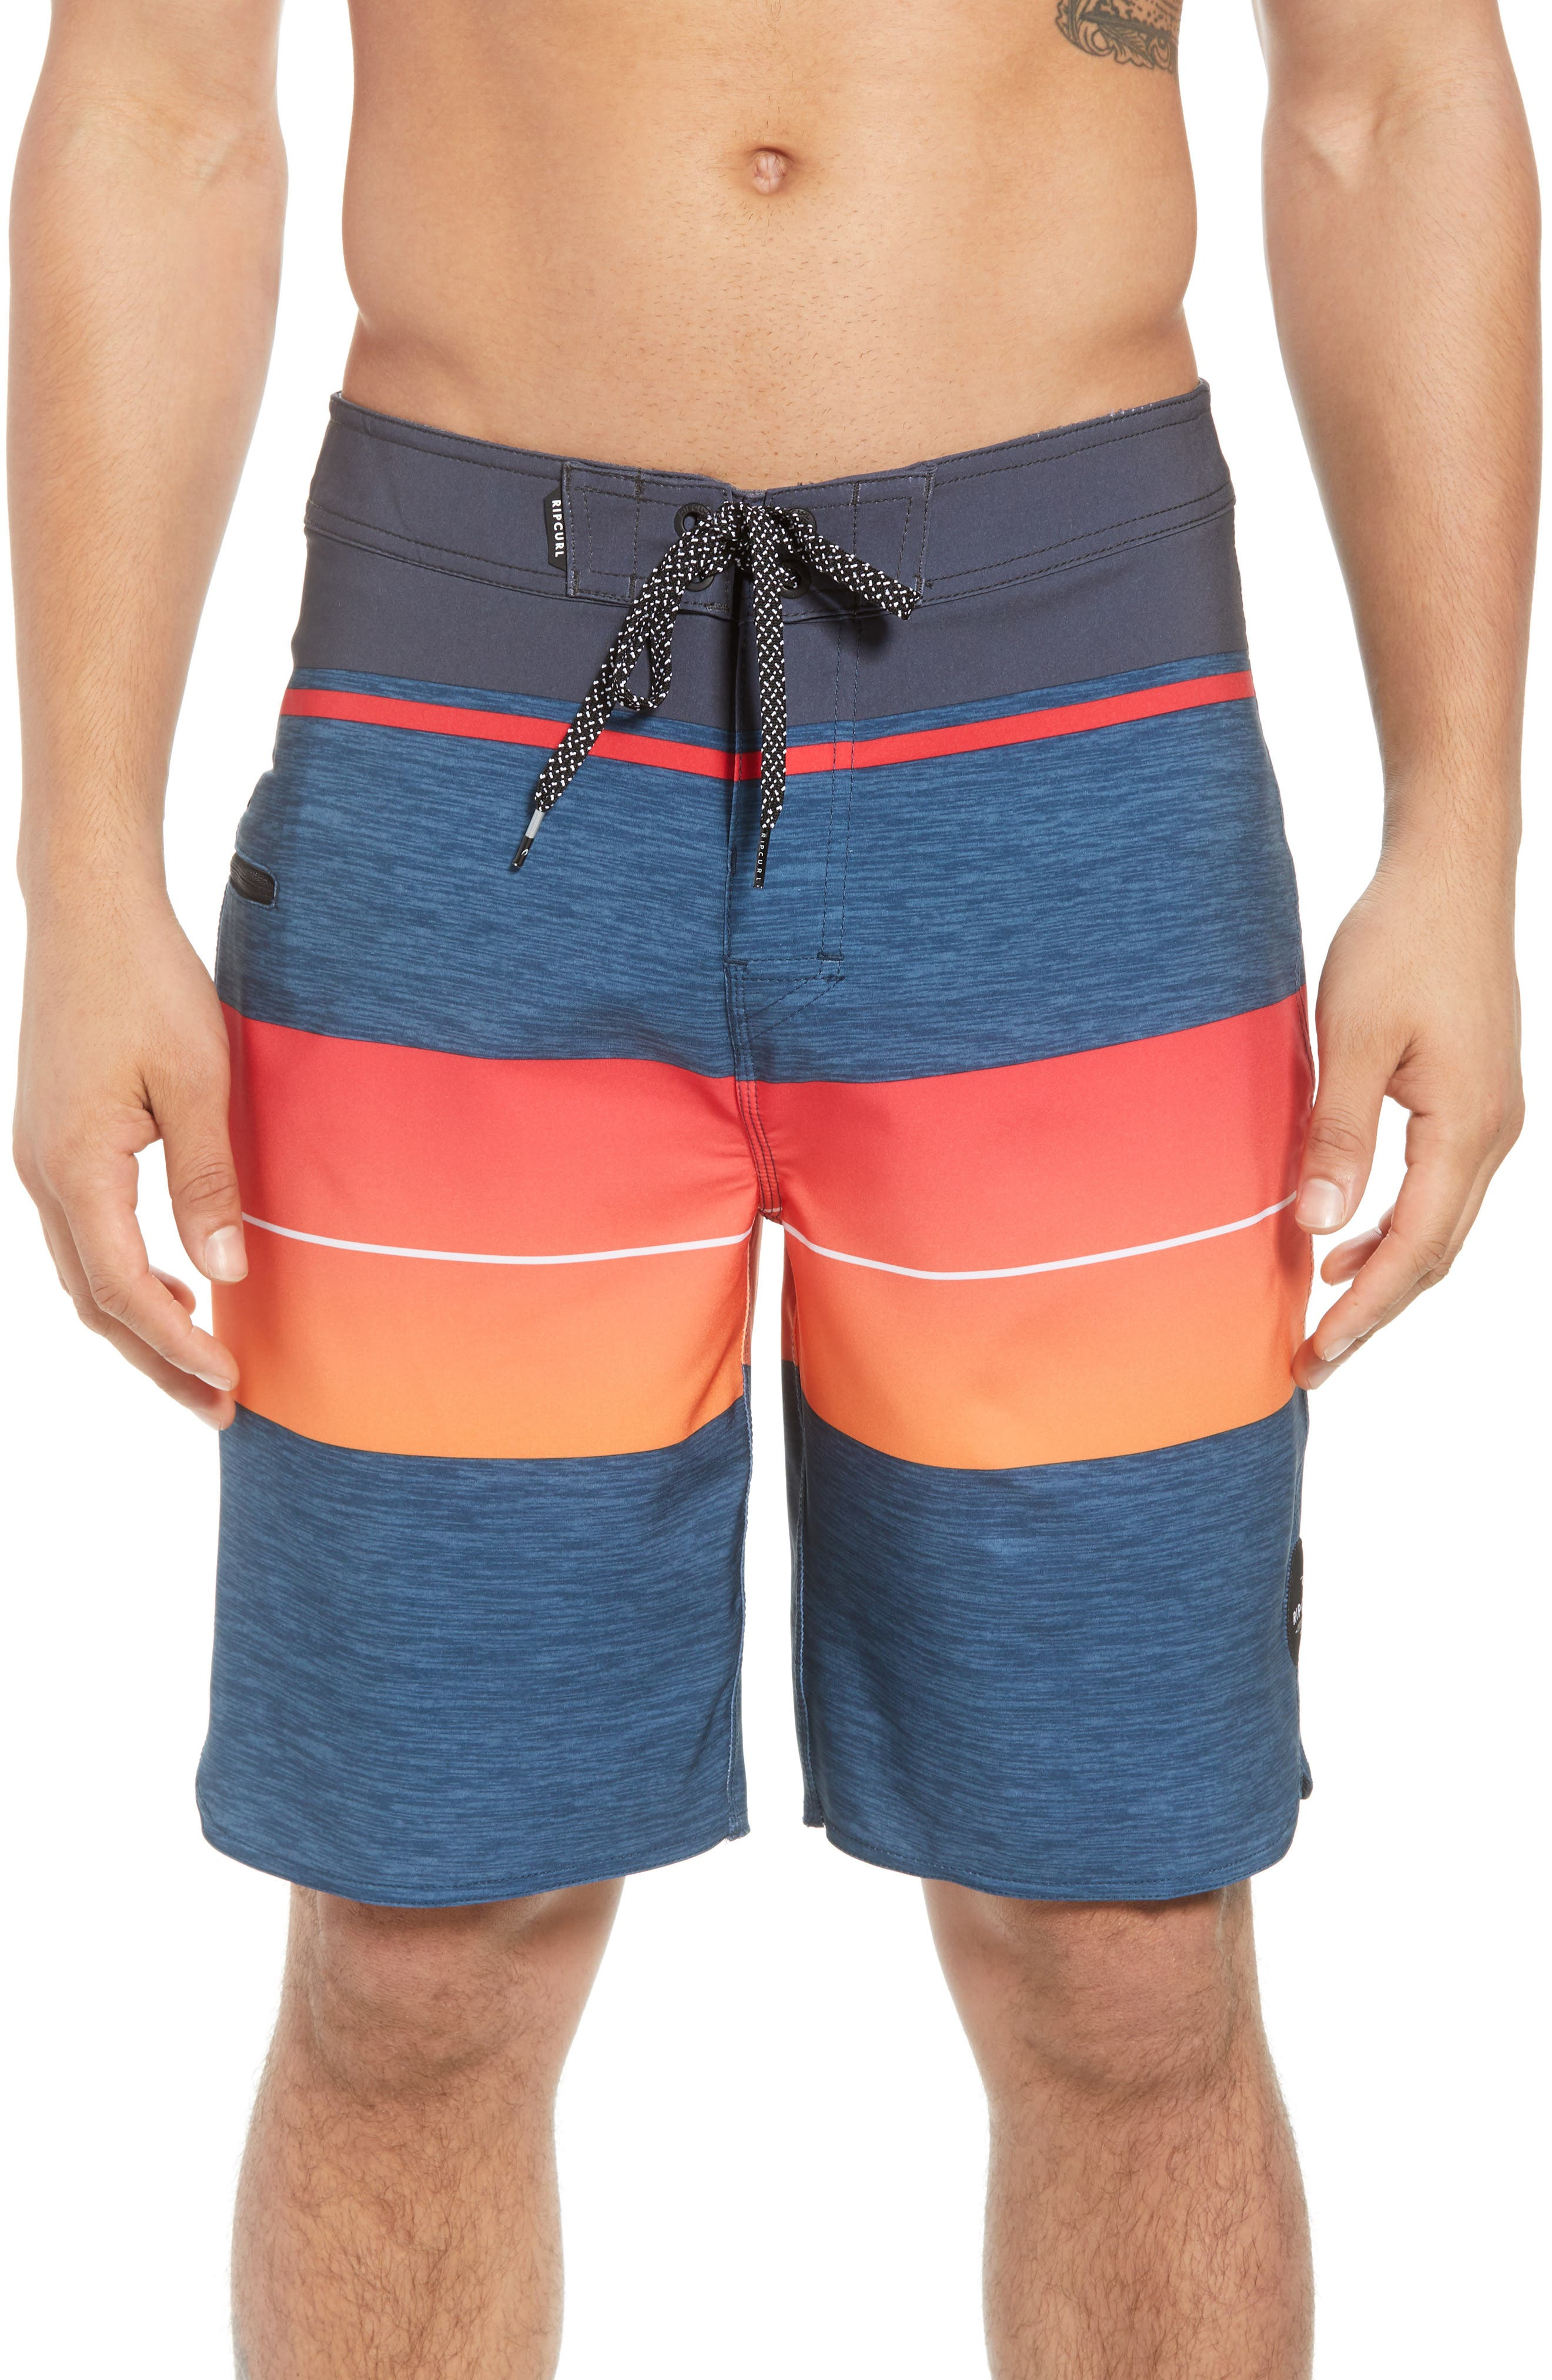 Rip Curl Mirage Eclipse Board Shorts